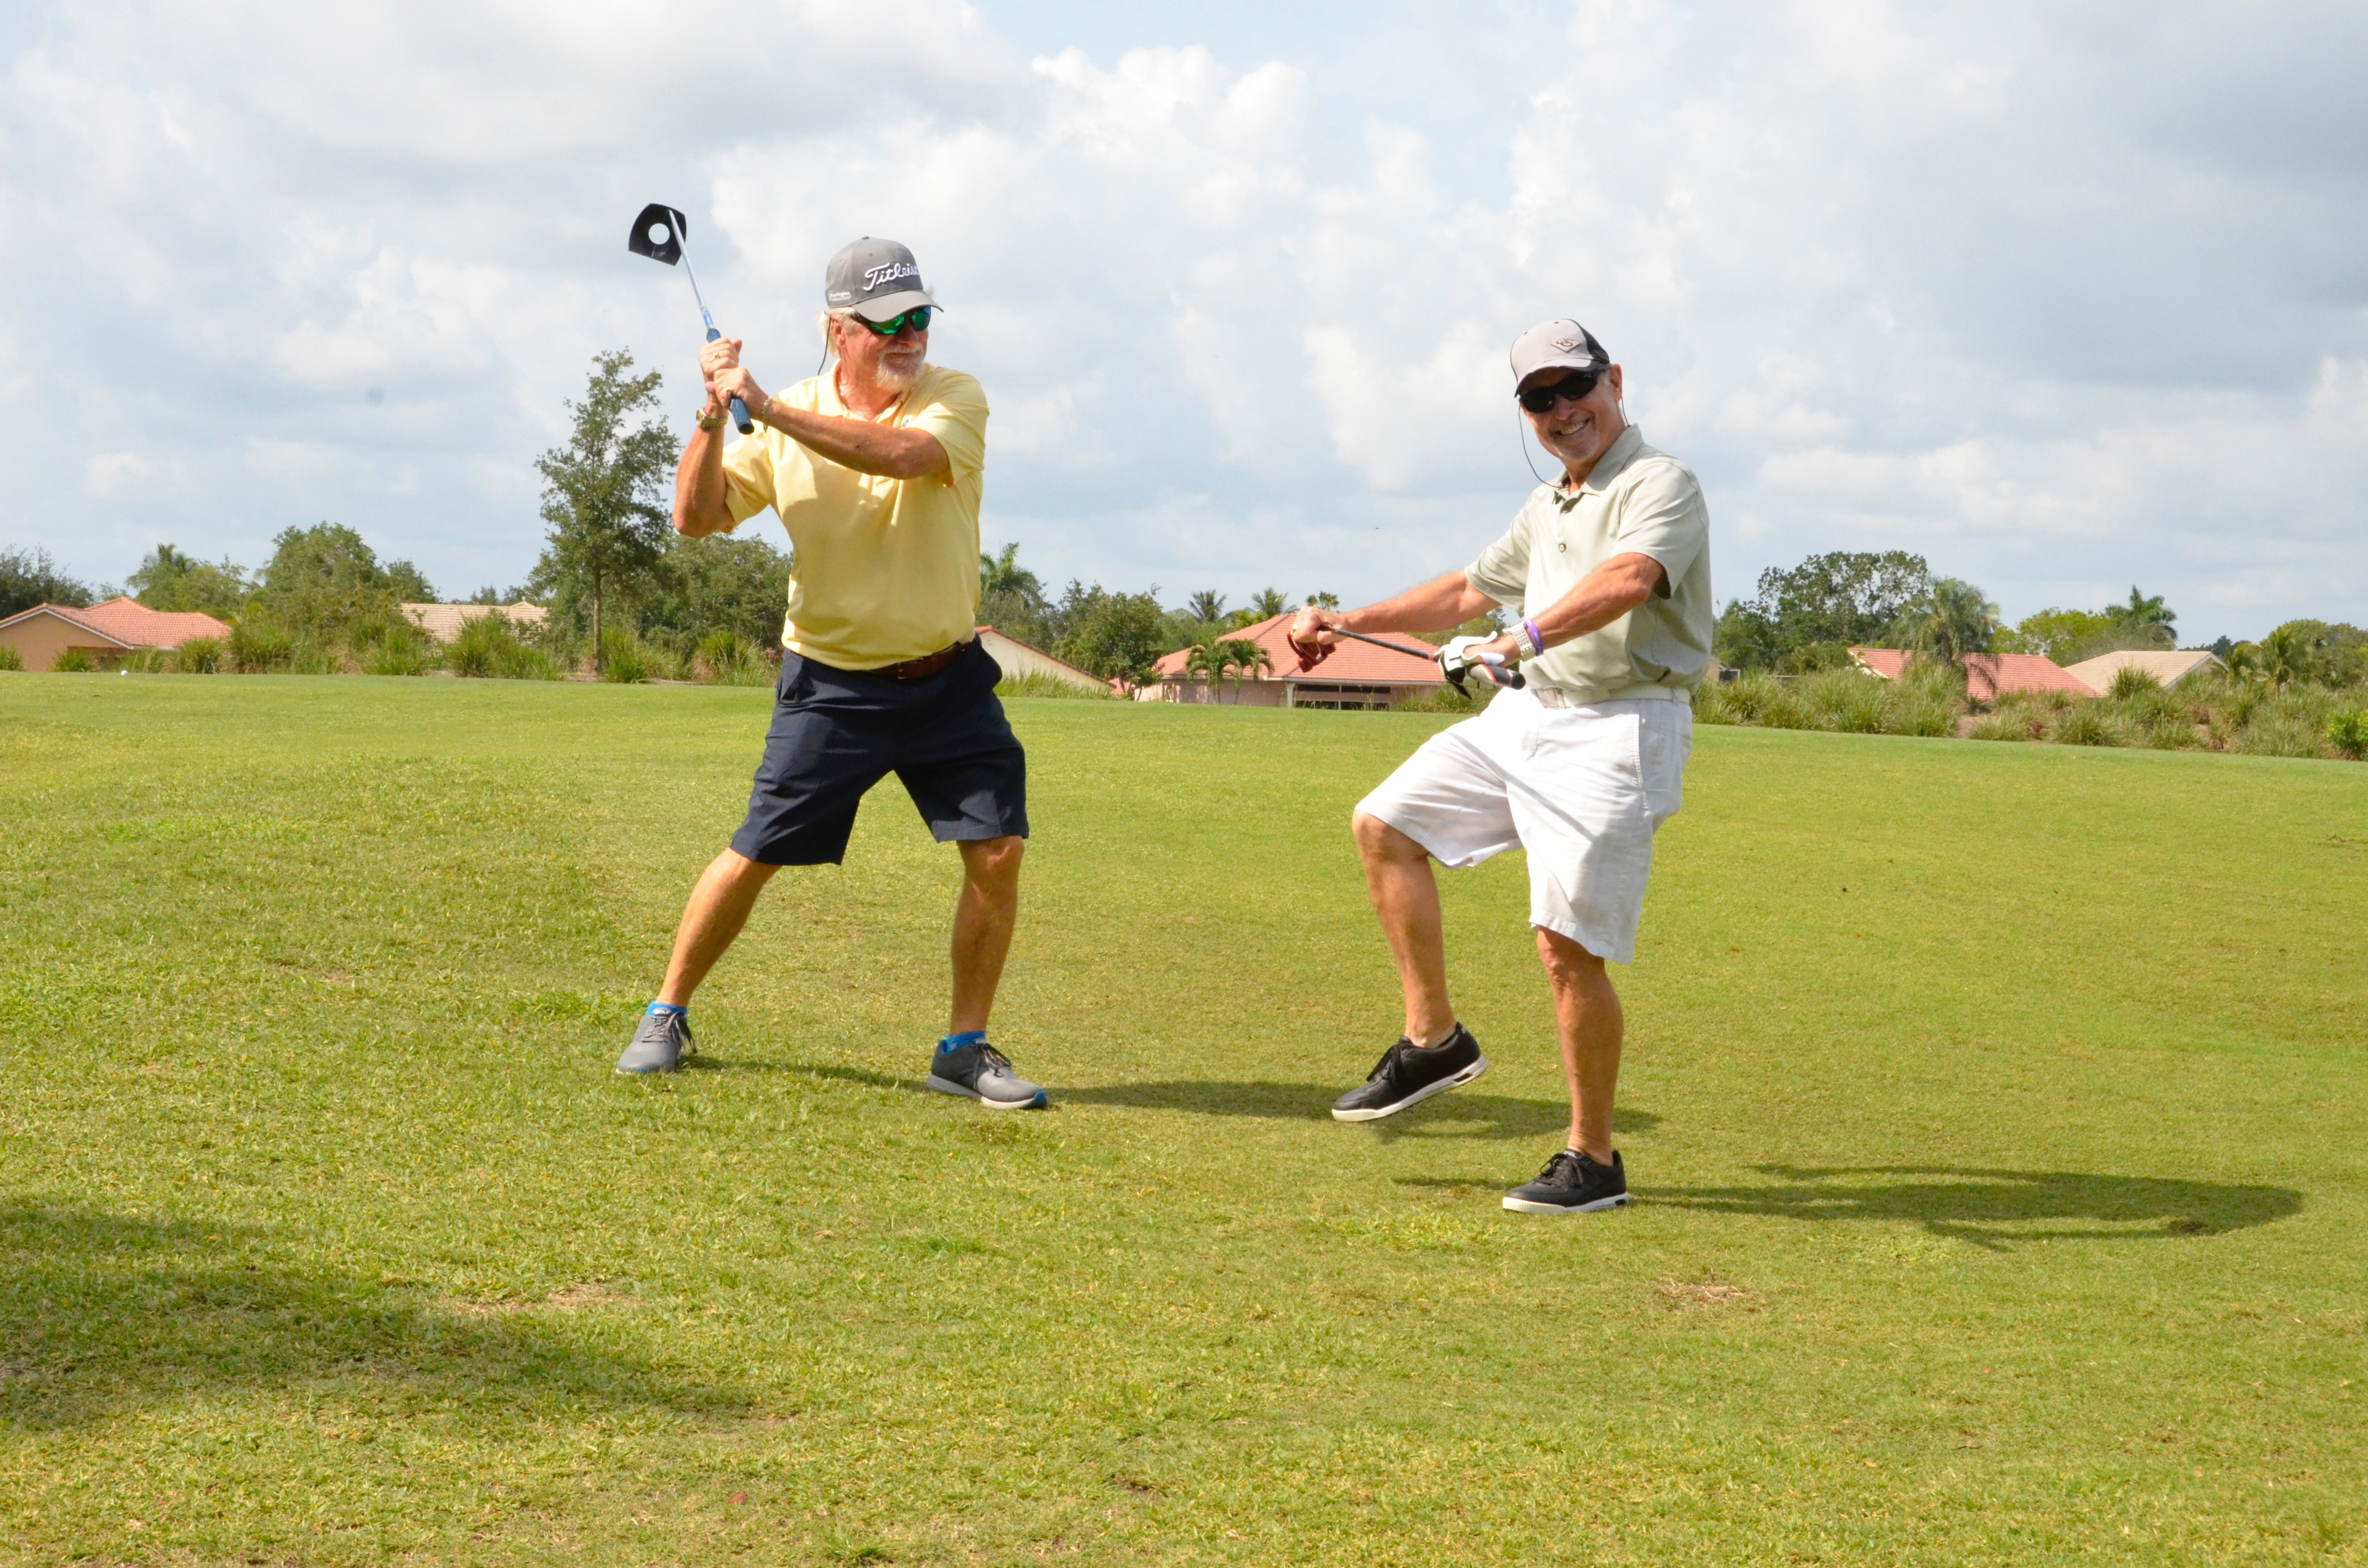 33rd Annual Rotary Golf Classic Sponsored by FHVLEGAL.COM gallery image #51